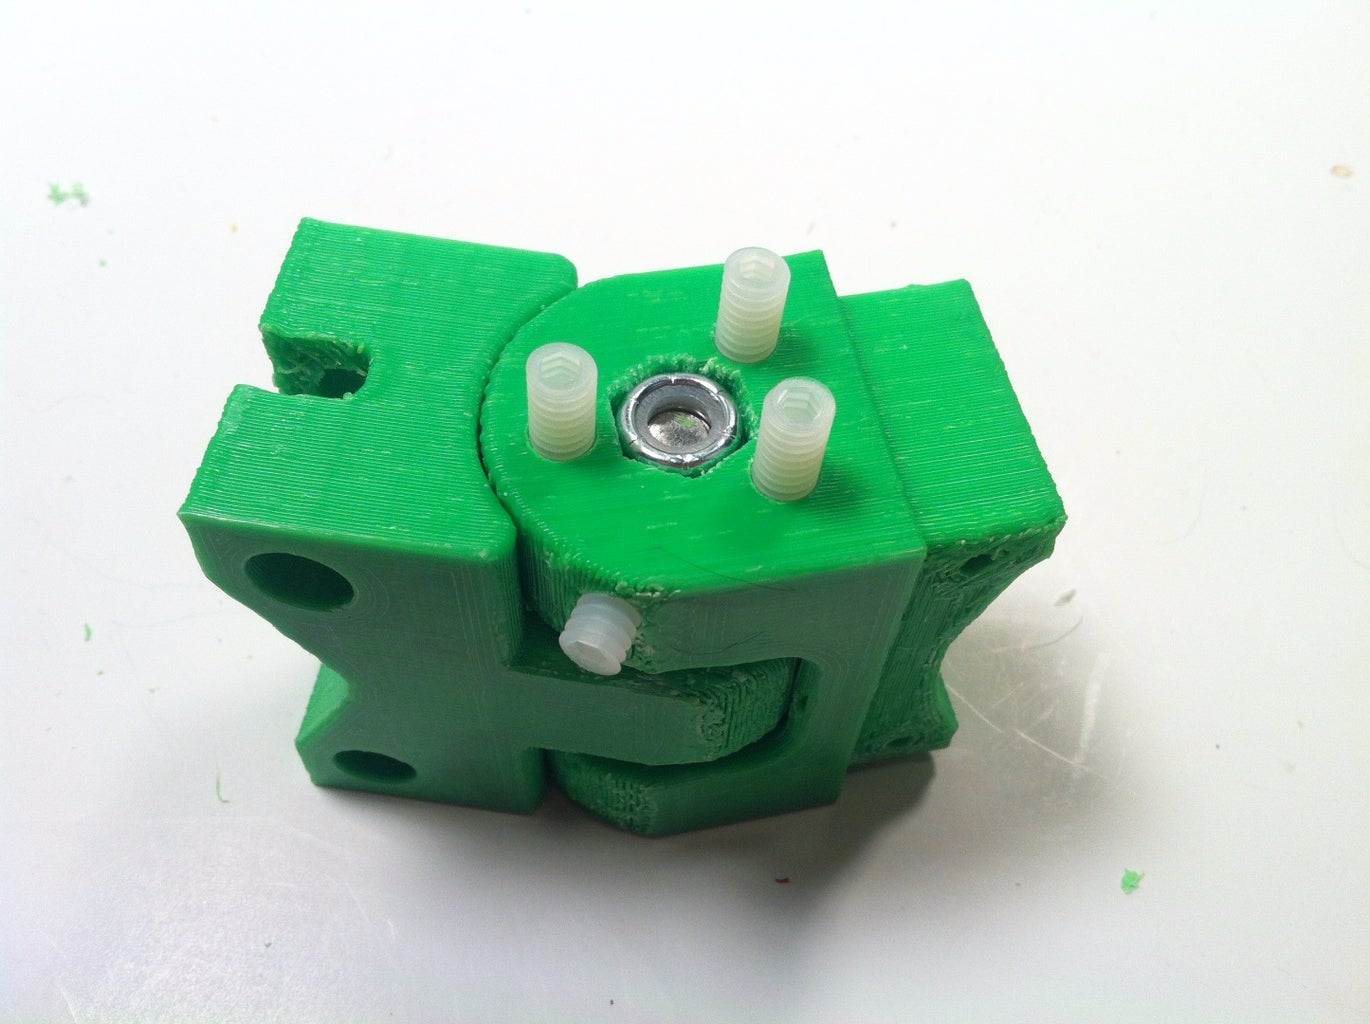 ASSEMBLY: FRONT SUB-ASSEMBLY